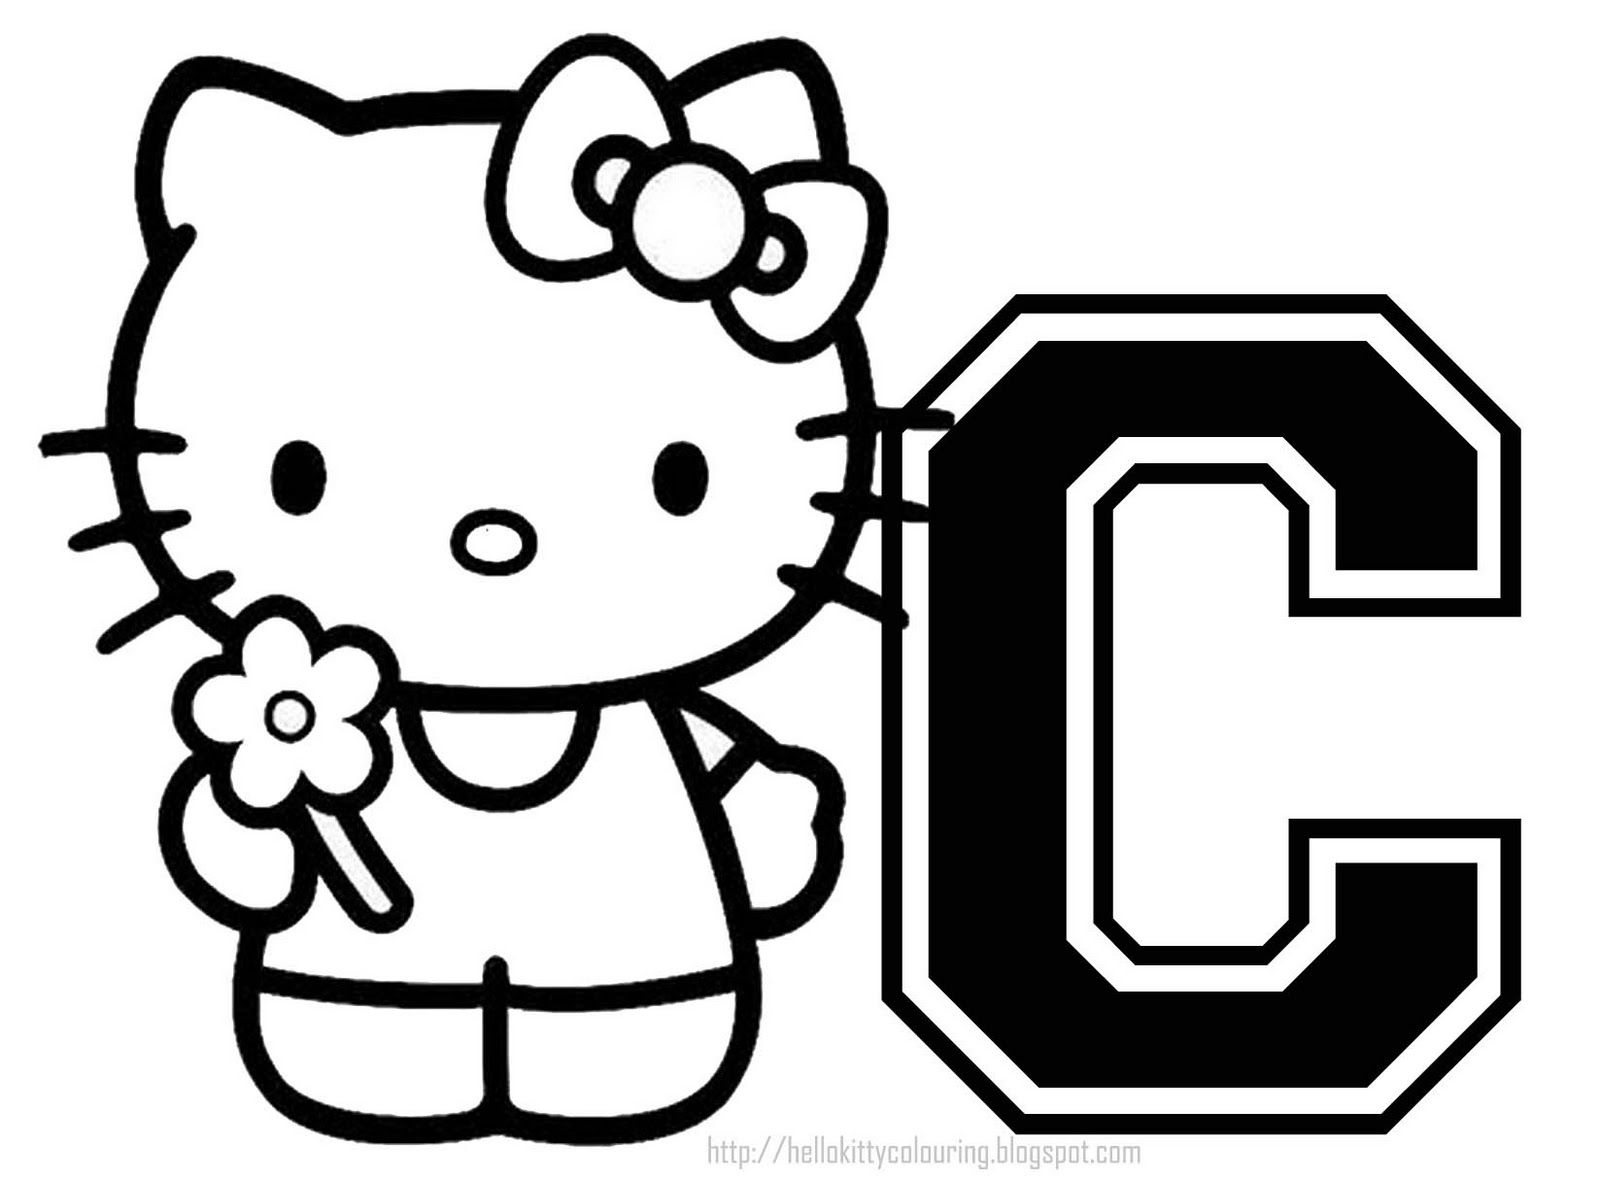 hello kitty coloring pages kleuren pinterest hello kitty and